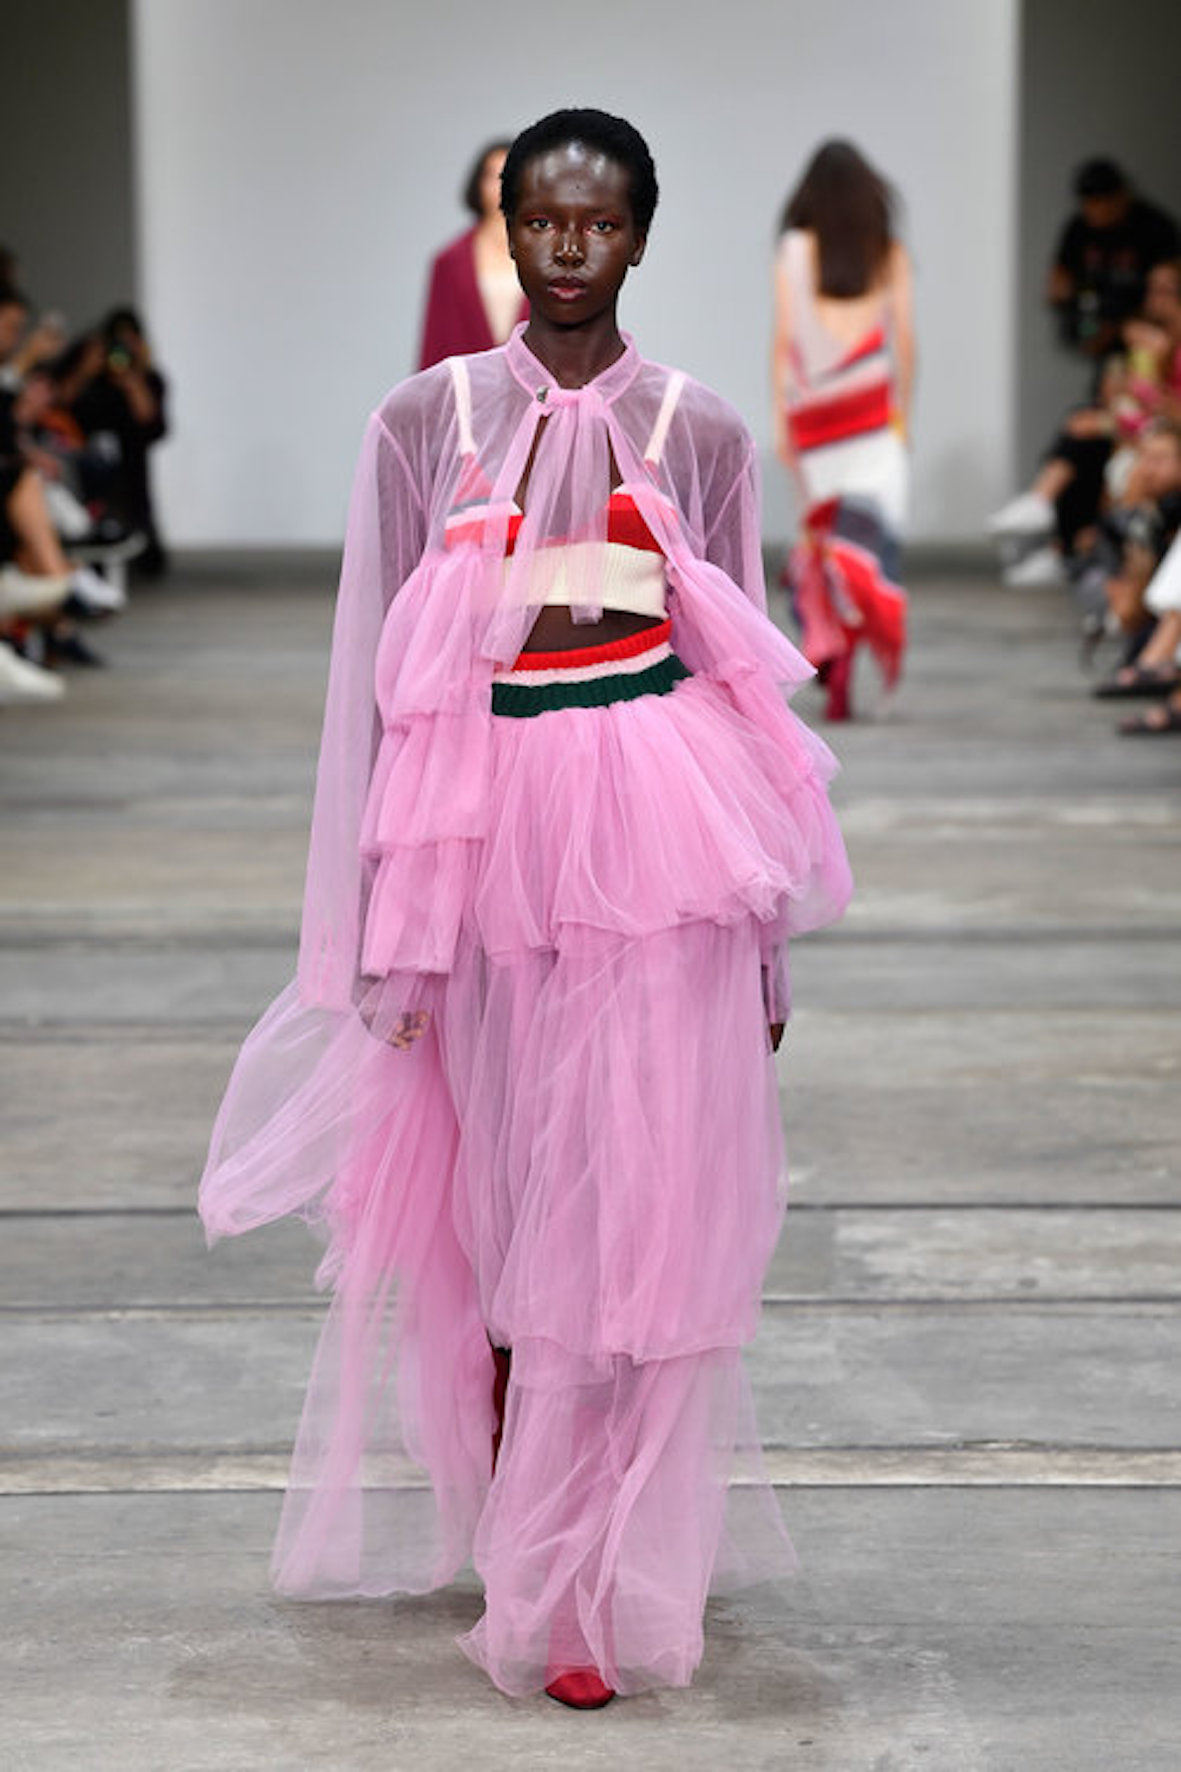 SYDNEY, AUSTRALIA - MAY 16: A model walks the runway in a design by Chloe Mottau during the St.George NextGen show at Mercedes-Benz Fashion Week Resort 20 Collections at Carriageworks on May 16, 2019 in Sydney, Australia. (Photo by Stefan Gosatti/Getty Images)